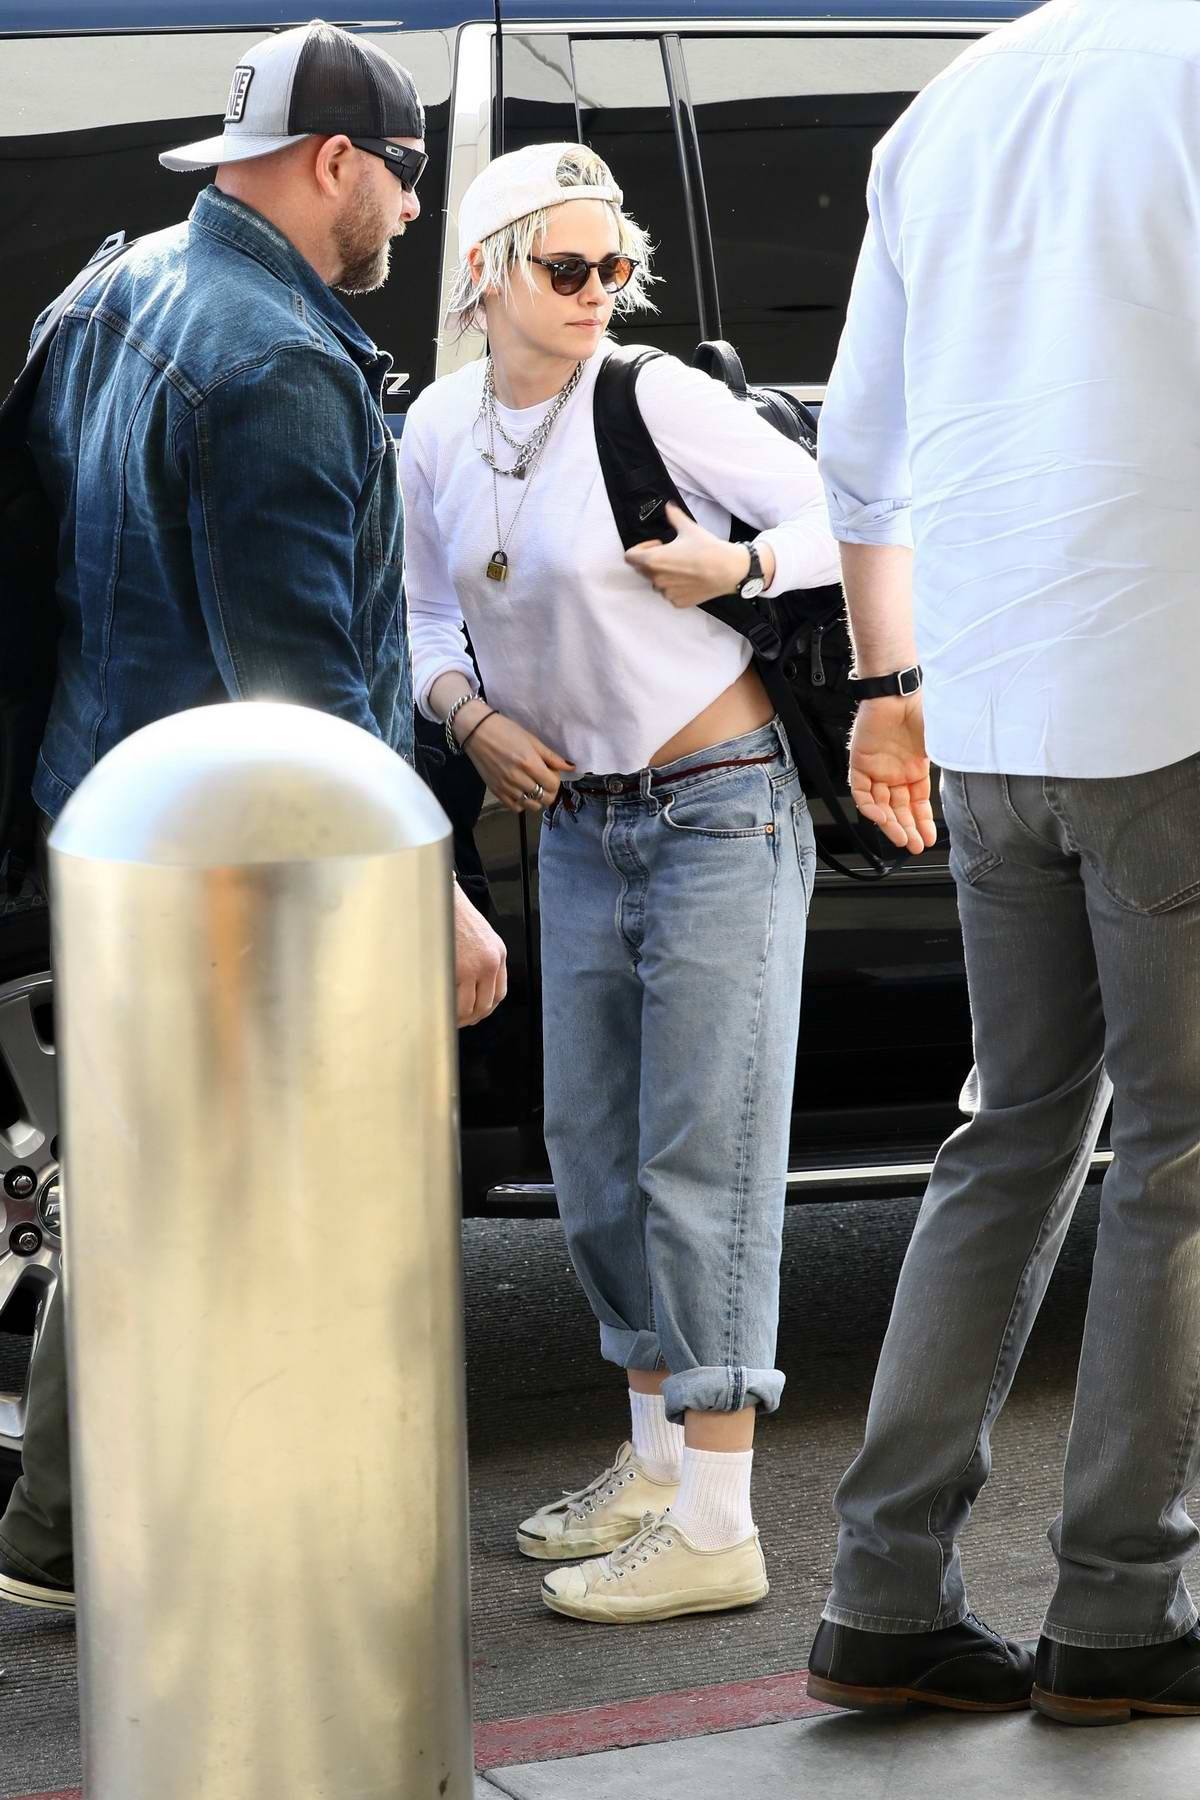 Kristen Stewart keeps it casual as she arrives to catch a flight out of LAX airport in Los Angeles